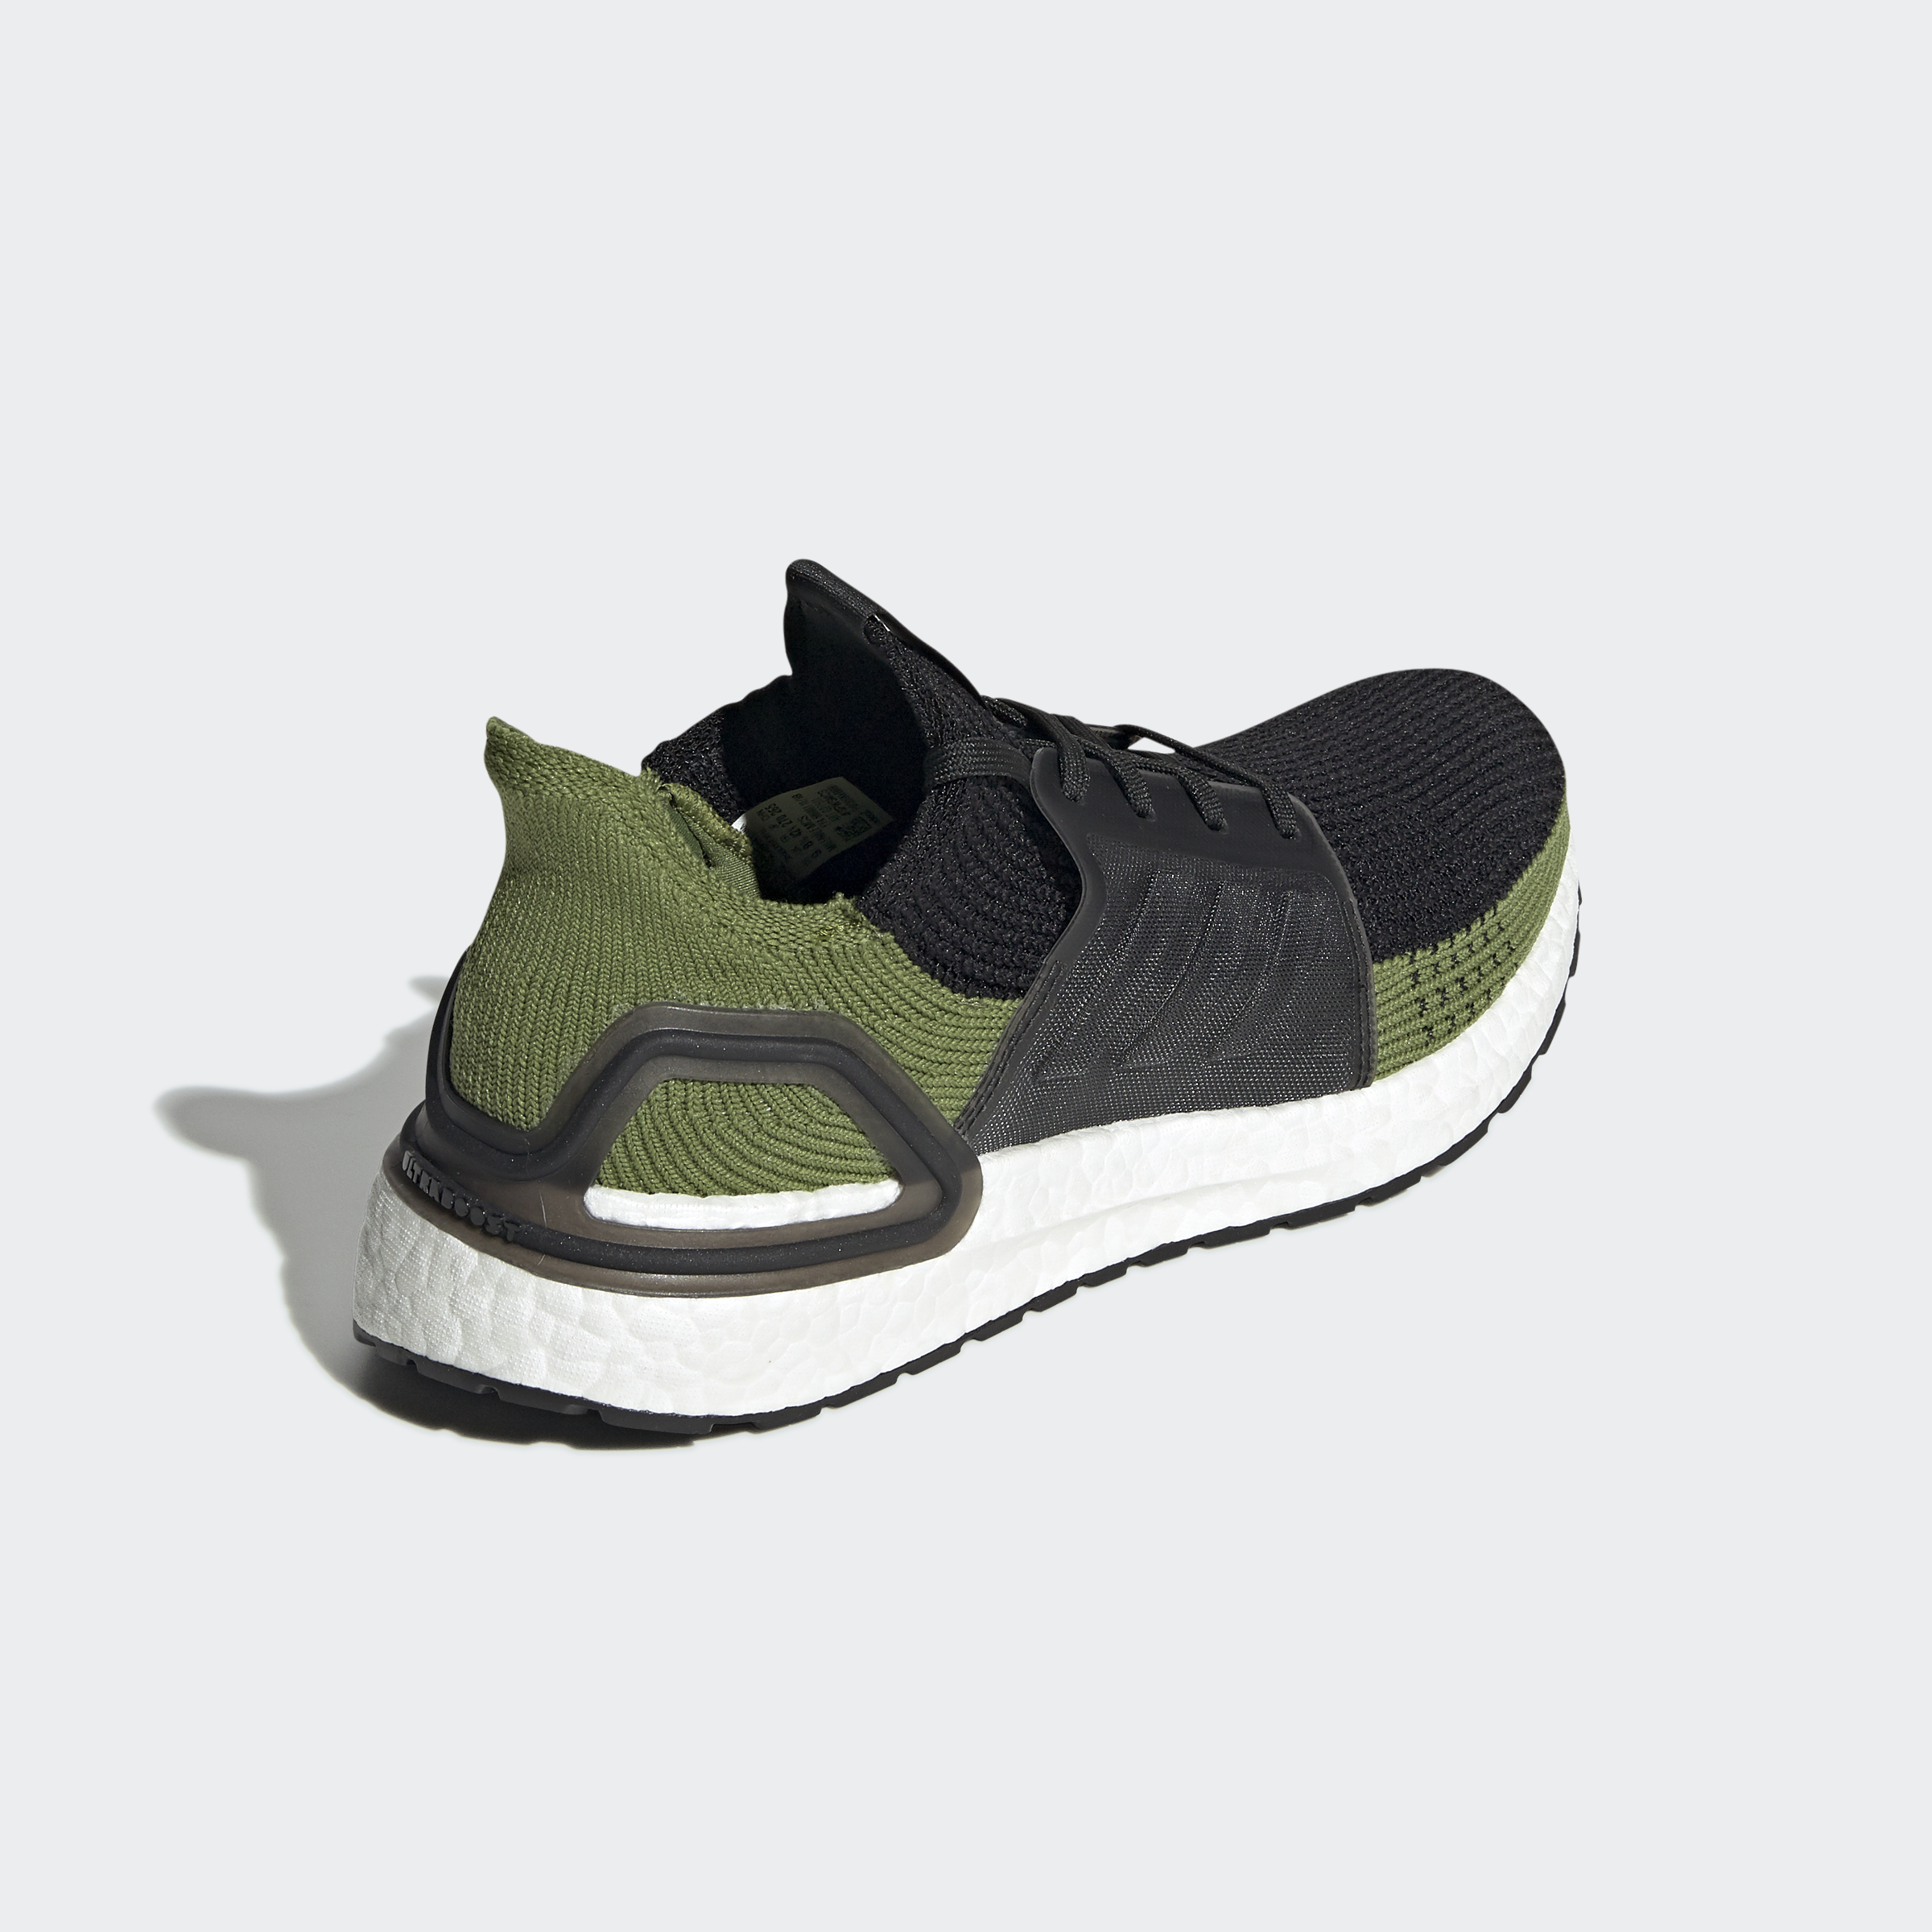 adidas-Ultraboost-19-Shoes-Athletic-amp-Sneakers thumbnail 108